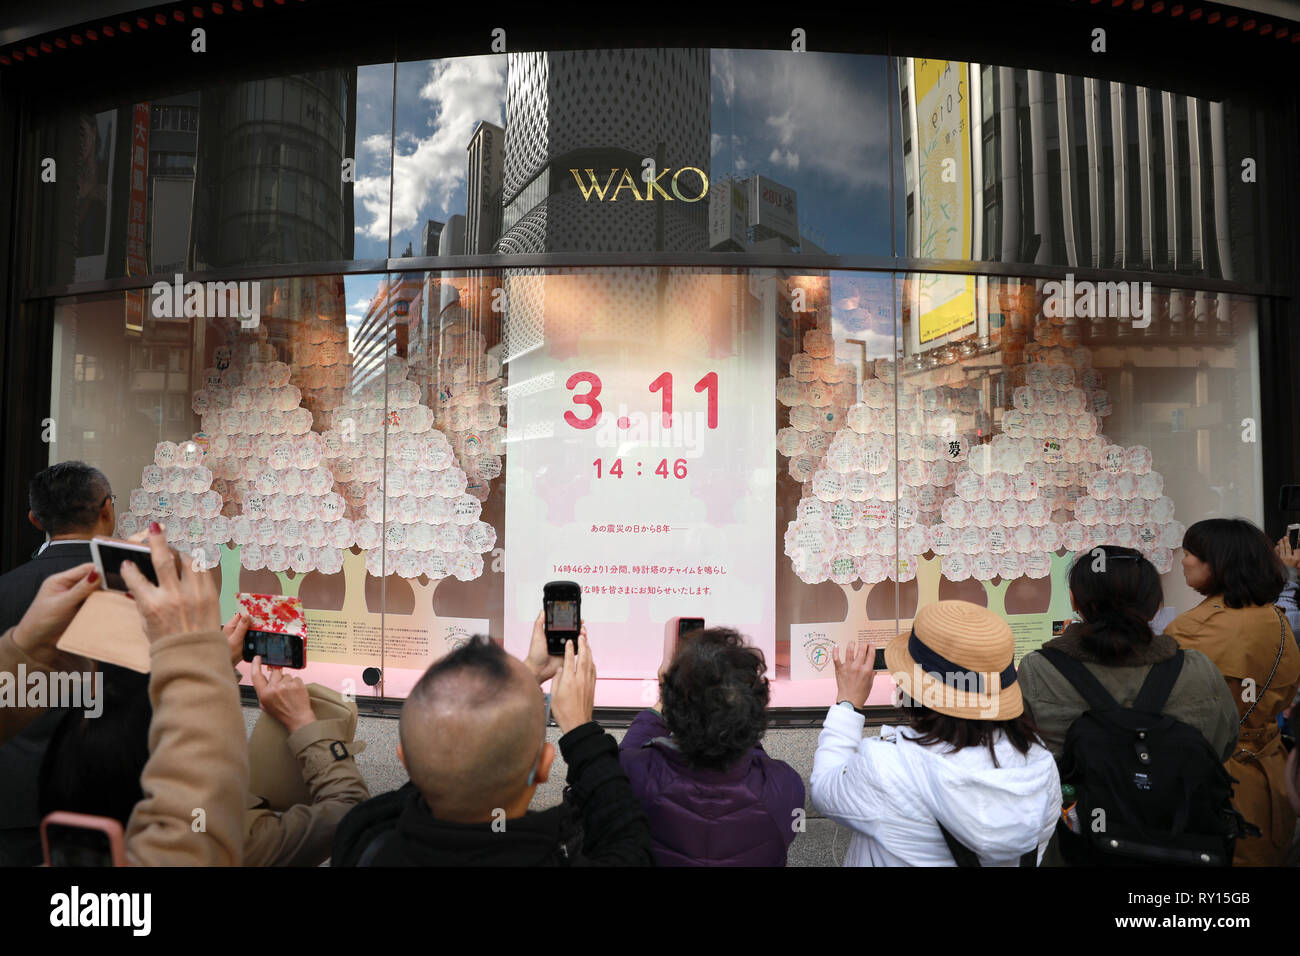 (190311) -- TOKYO, March 11, 2019 (Xinhua) -- A department store displays a memorial window to mourn for the victims of the March 11, 2011 earthquake-triggered tsunami during a memorial ceremony in Tokyo, Japan, March 11, 2019. Ceremonies were held across Japan on Monday to mark the eighth anniversary of a powerful earthquake-triggered tsunami, which obliterated swathes of the nation's northeastern seaboard and triggered the worst nuclear crisis since the 1986 Chernobyl disaster. A moment of silence was observed at a ceremony held in Tokyo and supported by the government. (Xinhua/Du Xiao - Stock Image